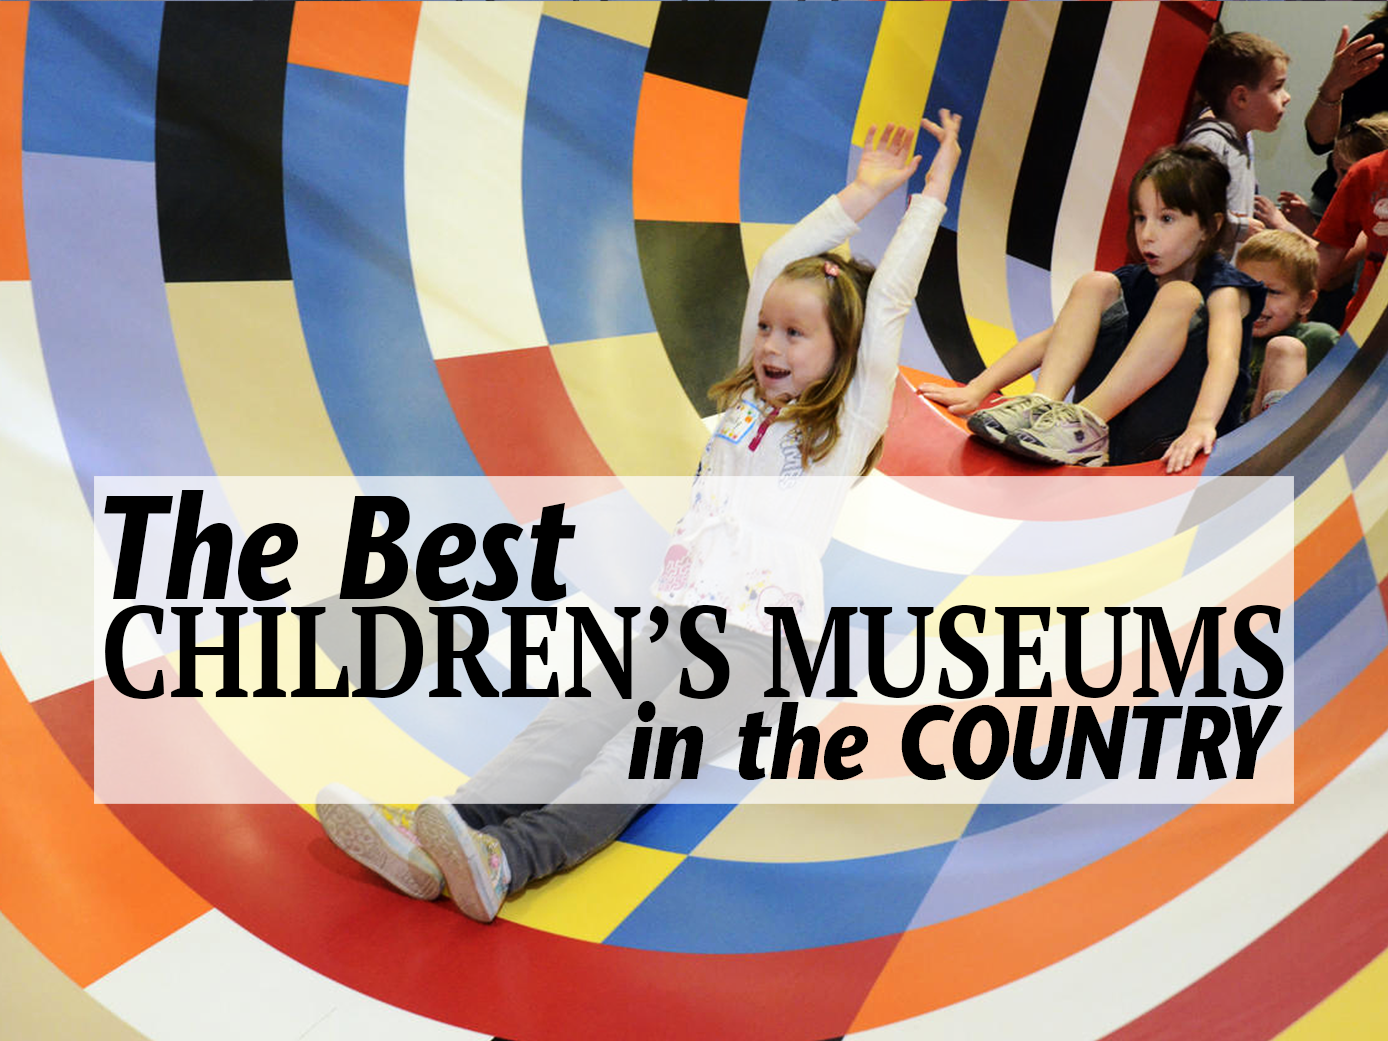 The 9 Best Children's Museums in the Country